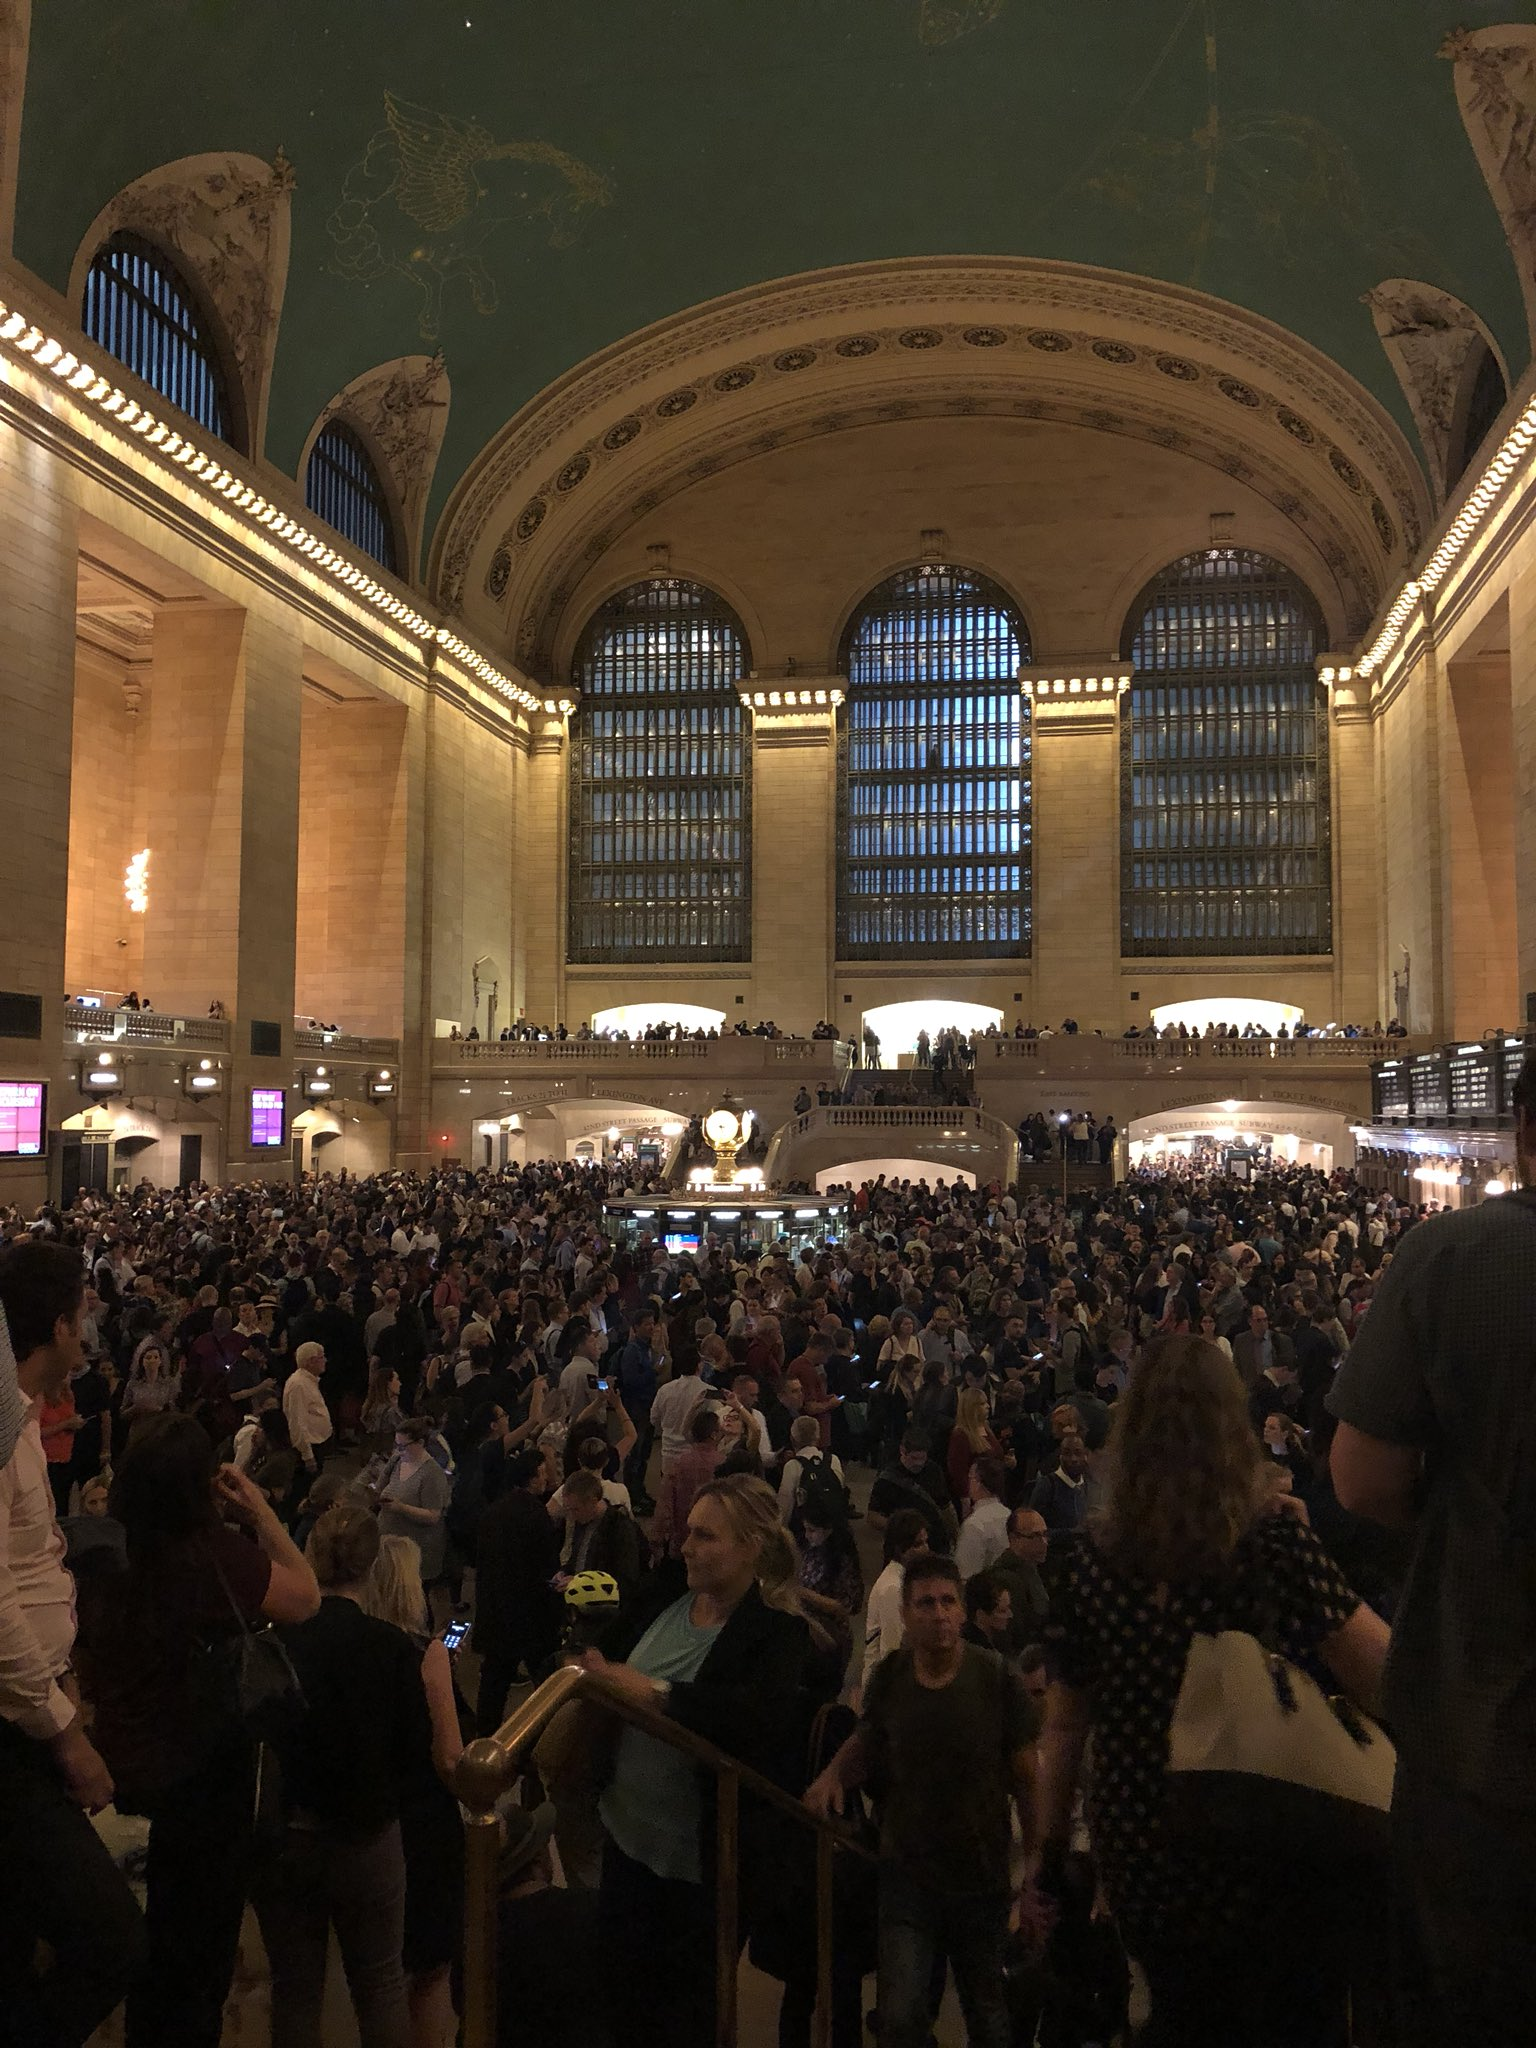 <div class='meta'><div class='origin-logo' data-origin='none'></div><span class='caption-text' data-credit=''>Crowded Grand Central after service was canceled due to storms from Barb Leung via Twitter</span></div>